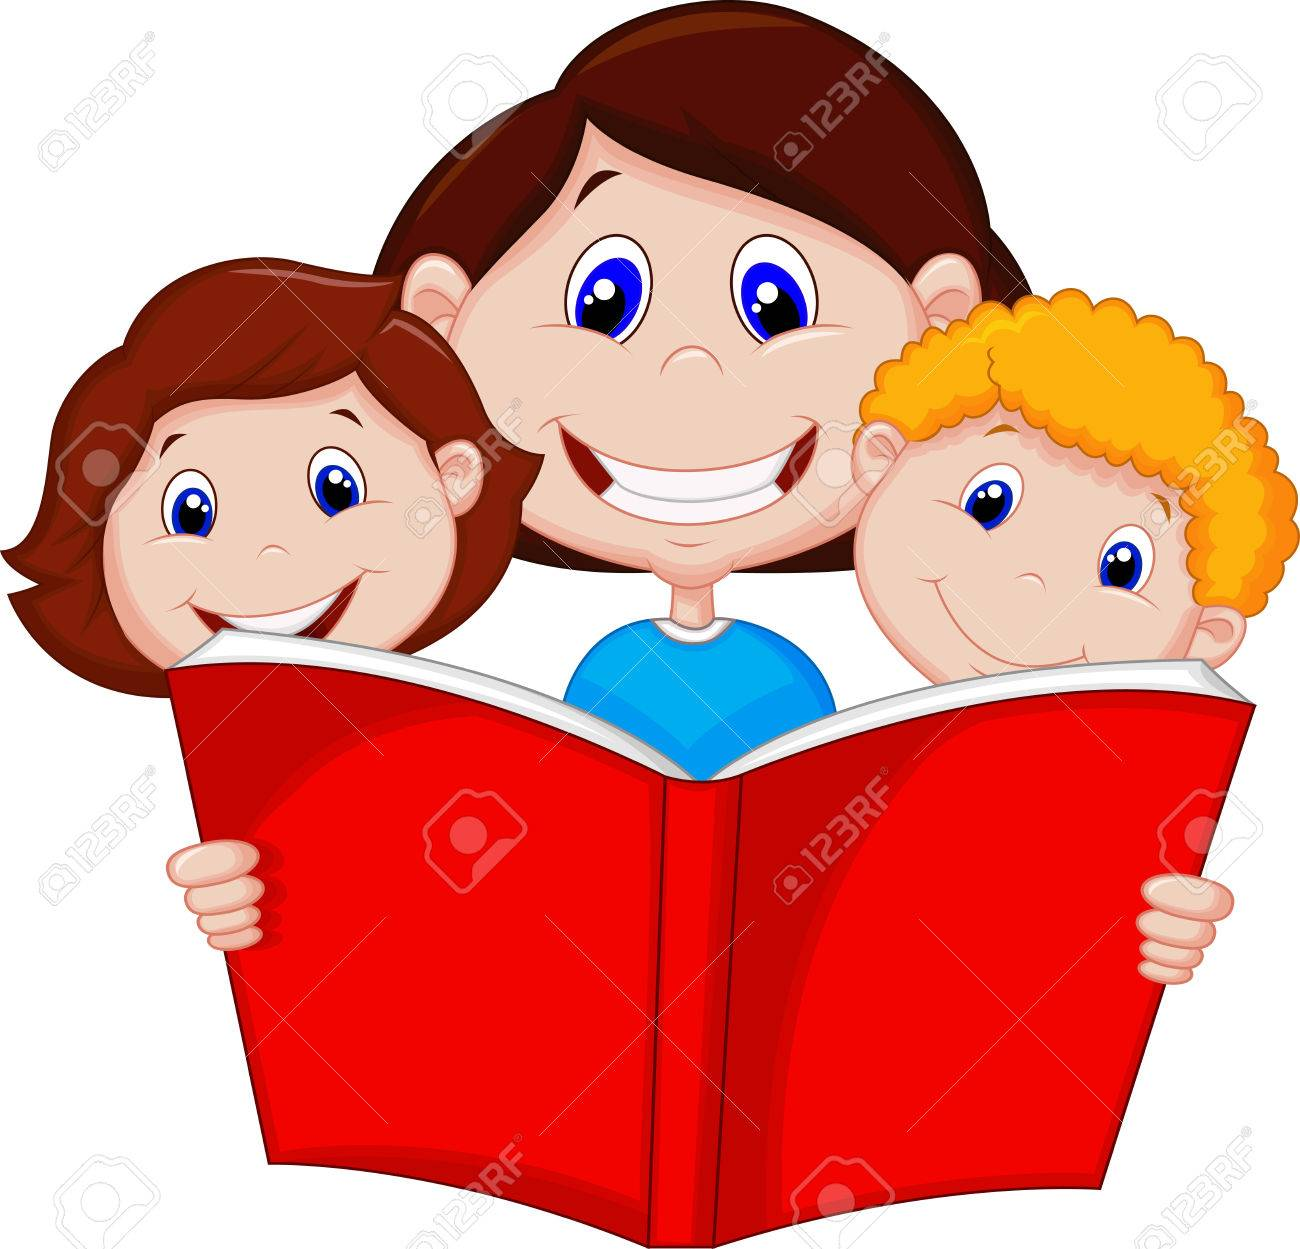 Books Cartoon Clipart Cartoon Mother Reading Book to